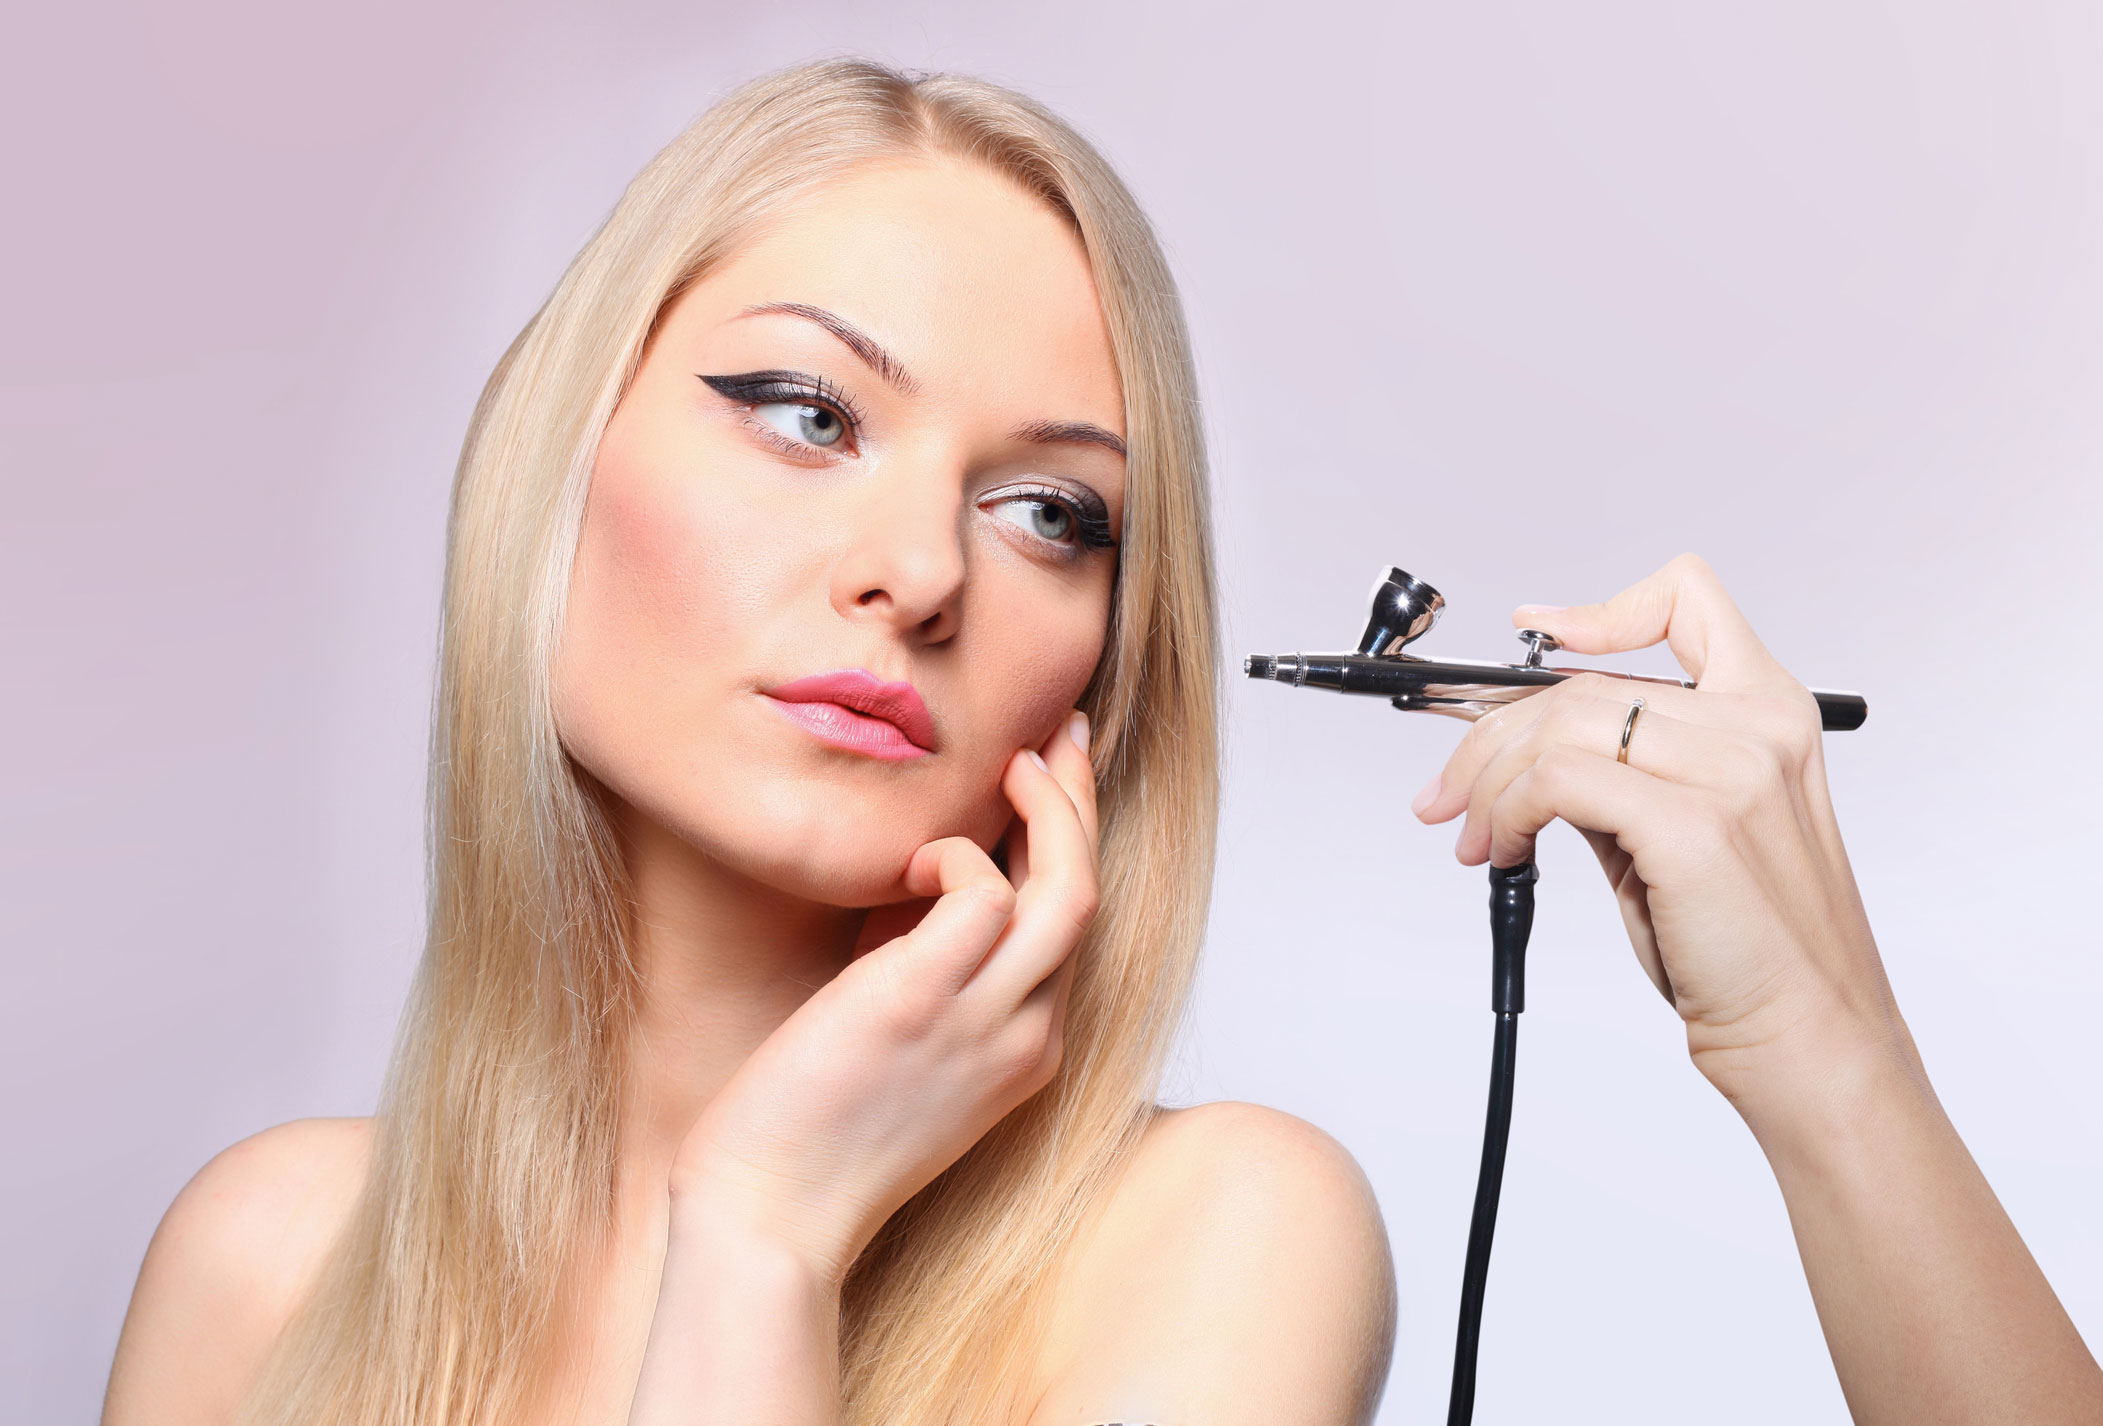 Cheap Airbrush Makeup Kits Lovetoknow